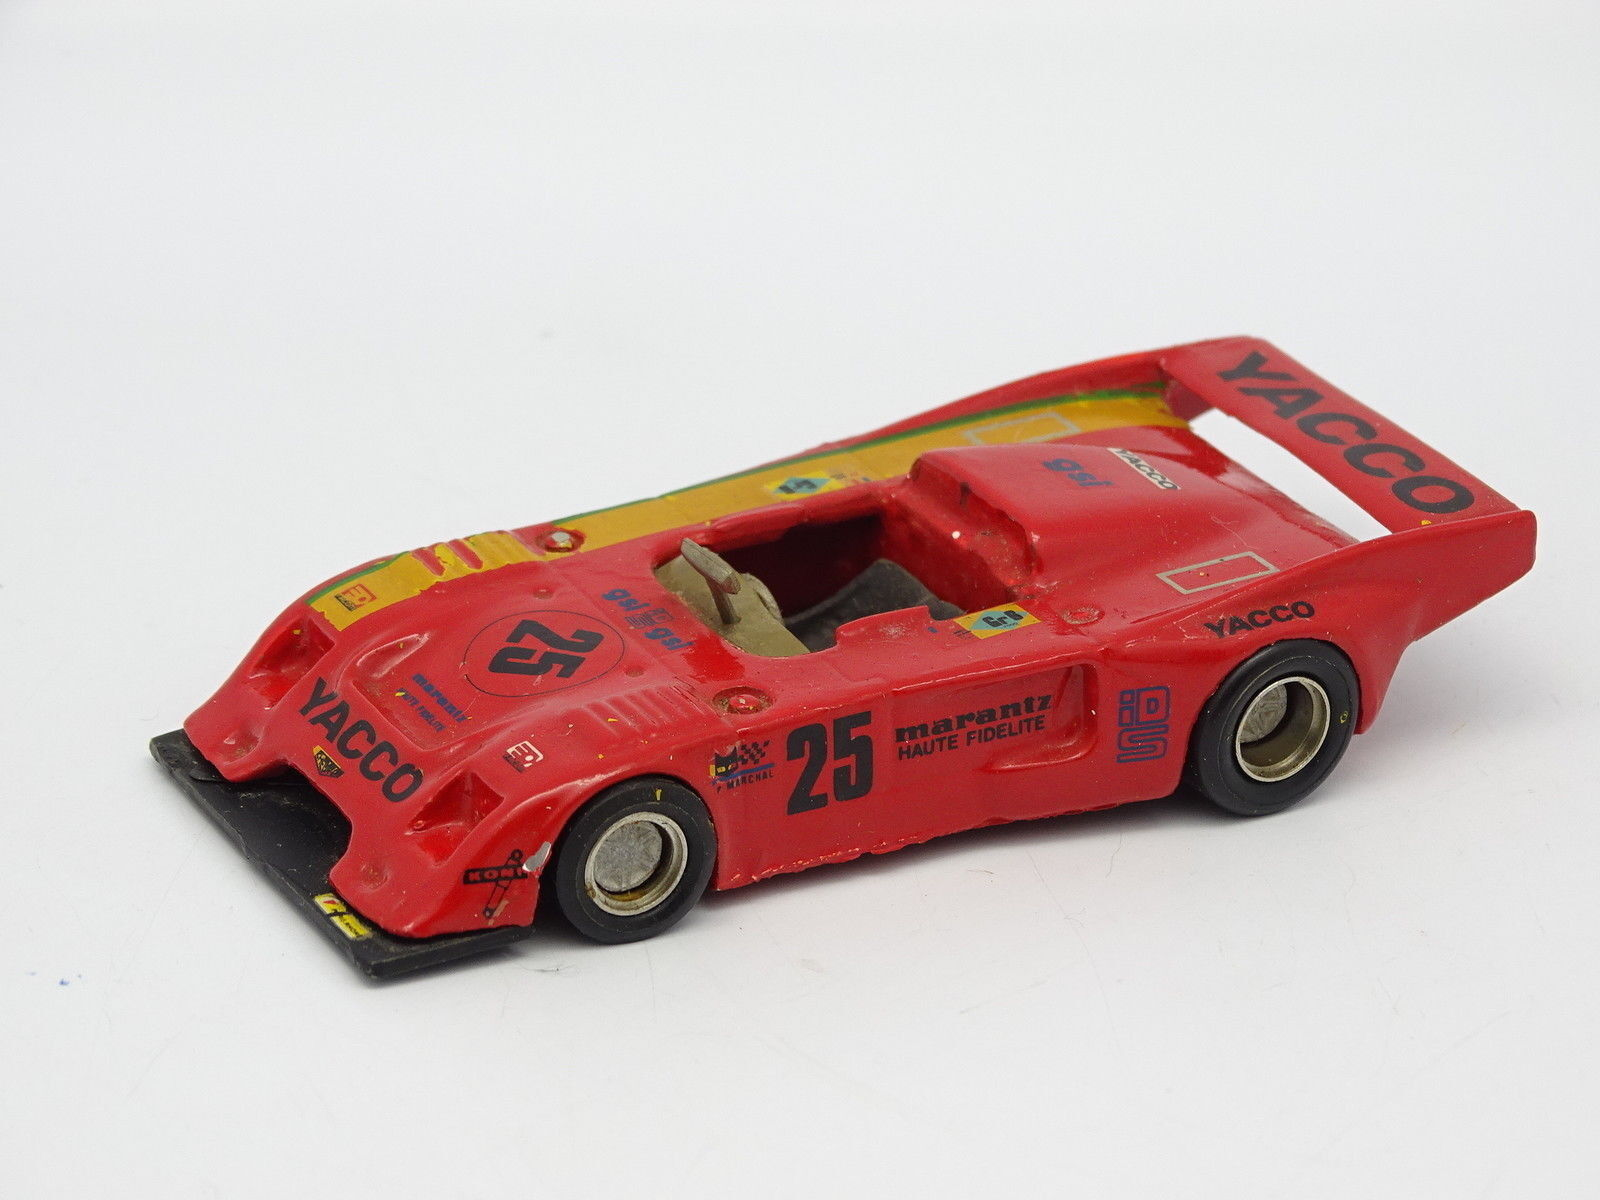 Mini Racing Set Aufgebaut Sb 1 43 - Chevron B36 Roc Yacco Nr. 25